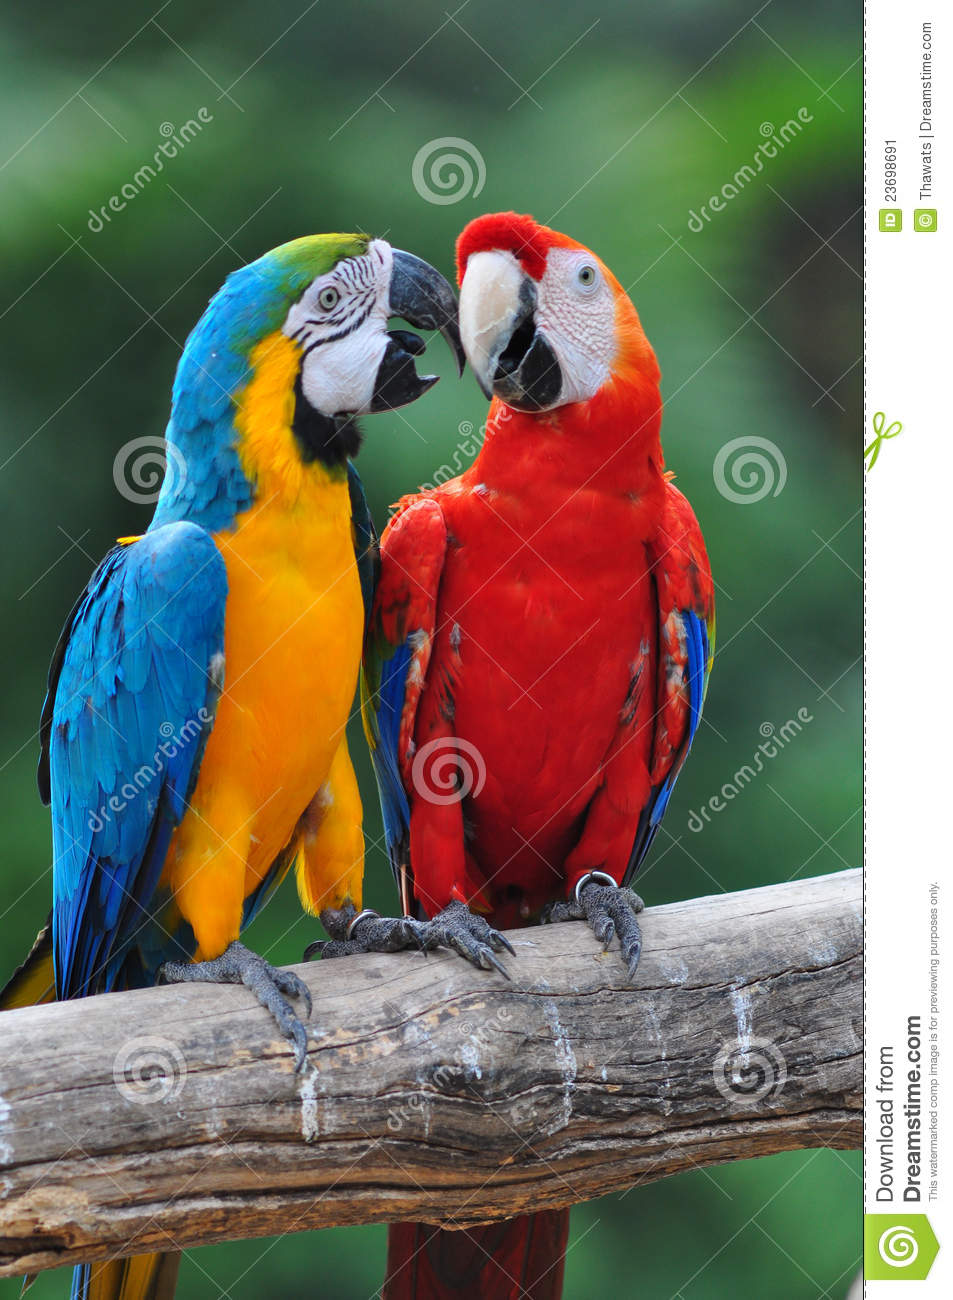 Stock Image Colorful Parrot Love Bird Macaw Image23698691